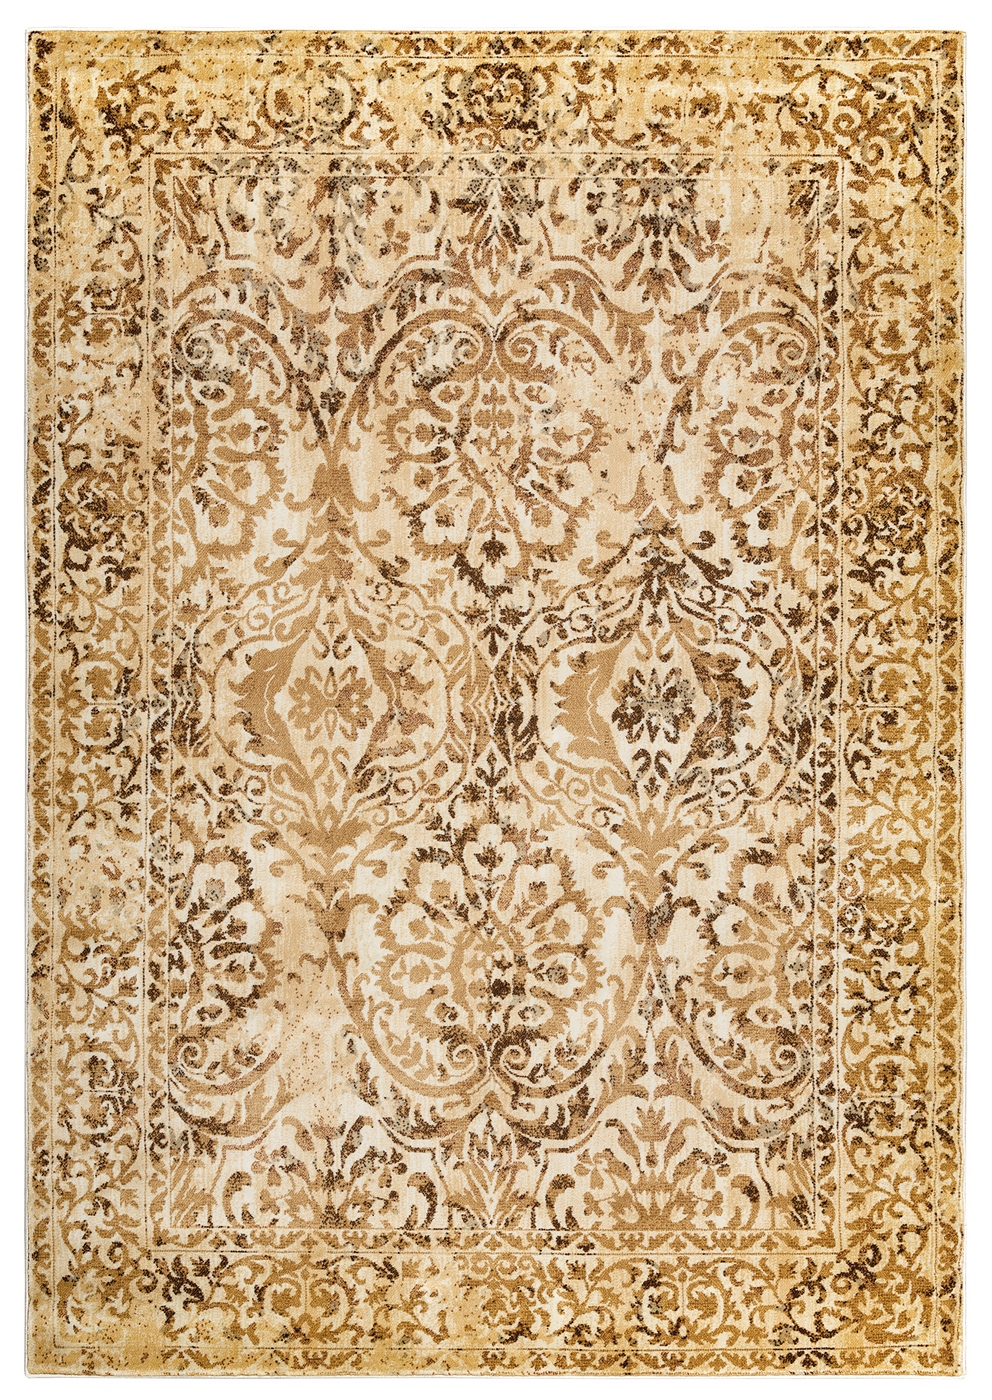 Bennington Sandy Damask Border Area Rug In Tan Amp Ivory 5